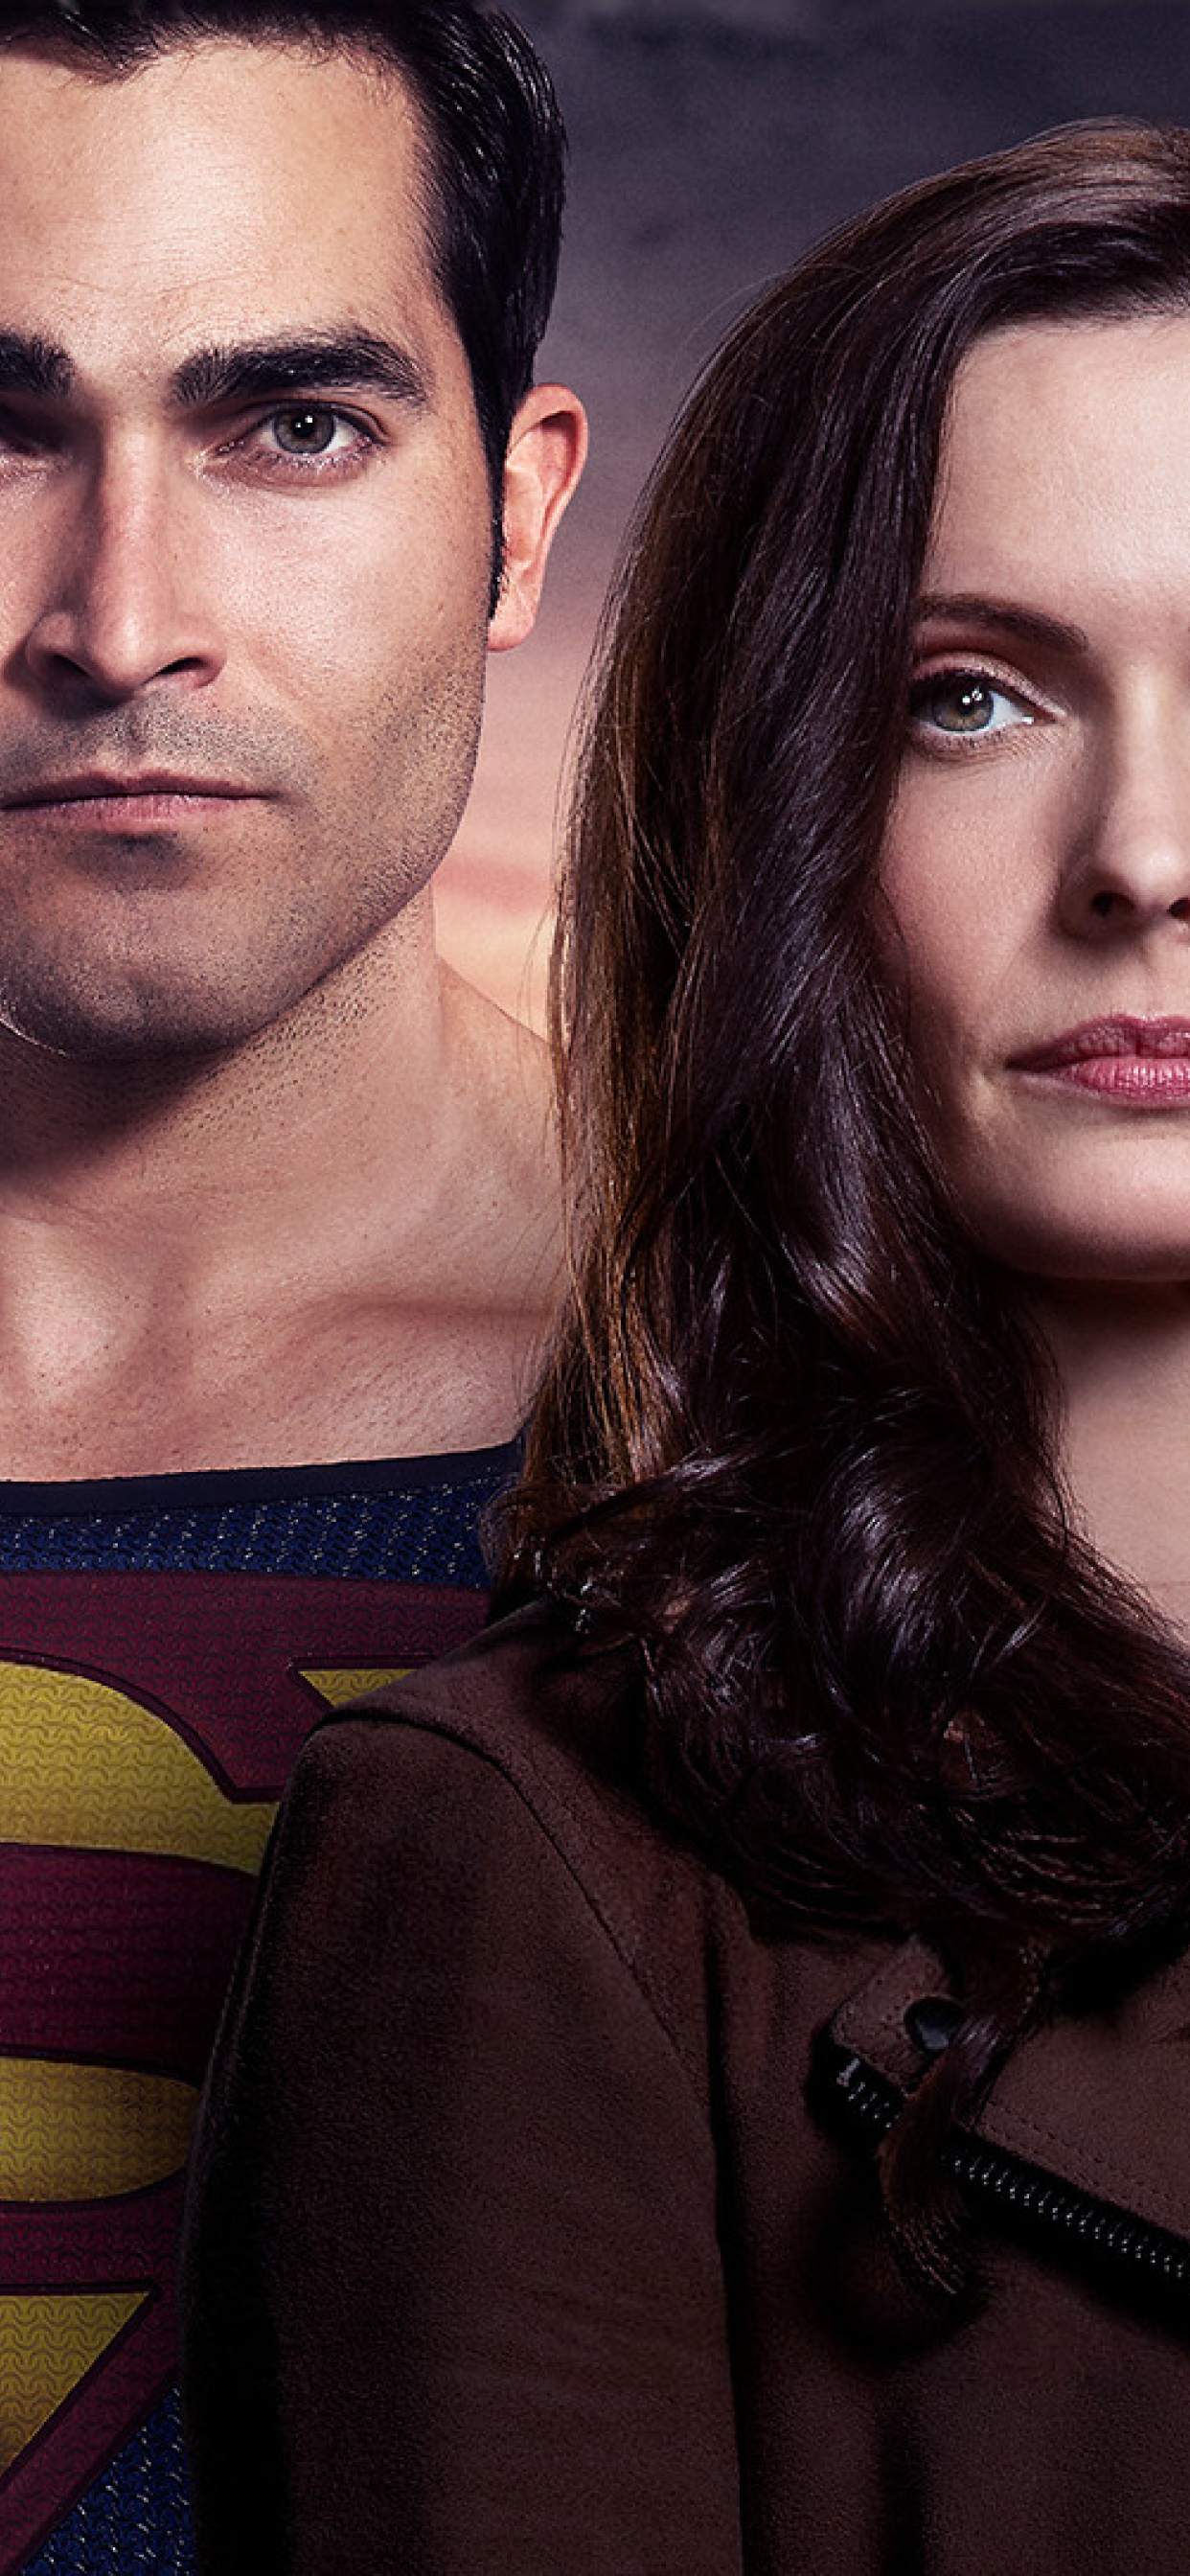 Superman & Lois 2020 Wallpaper in 1242x2688 Resolution